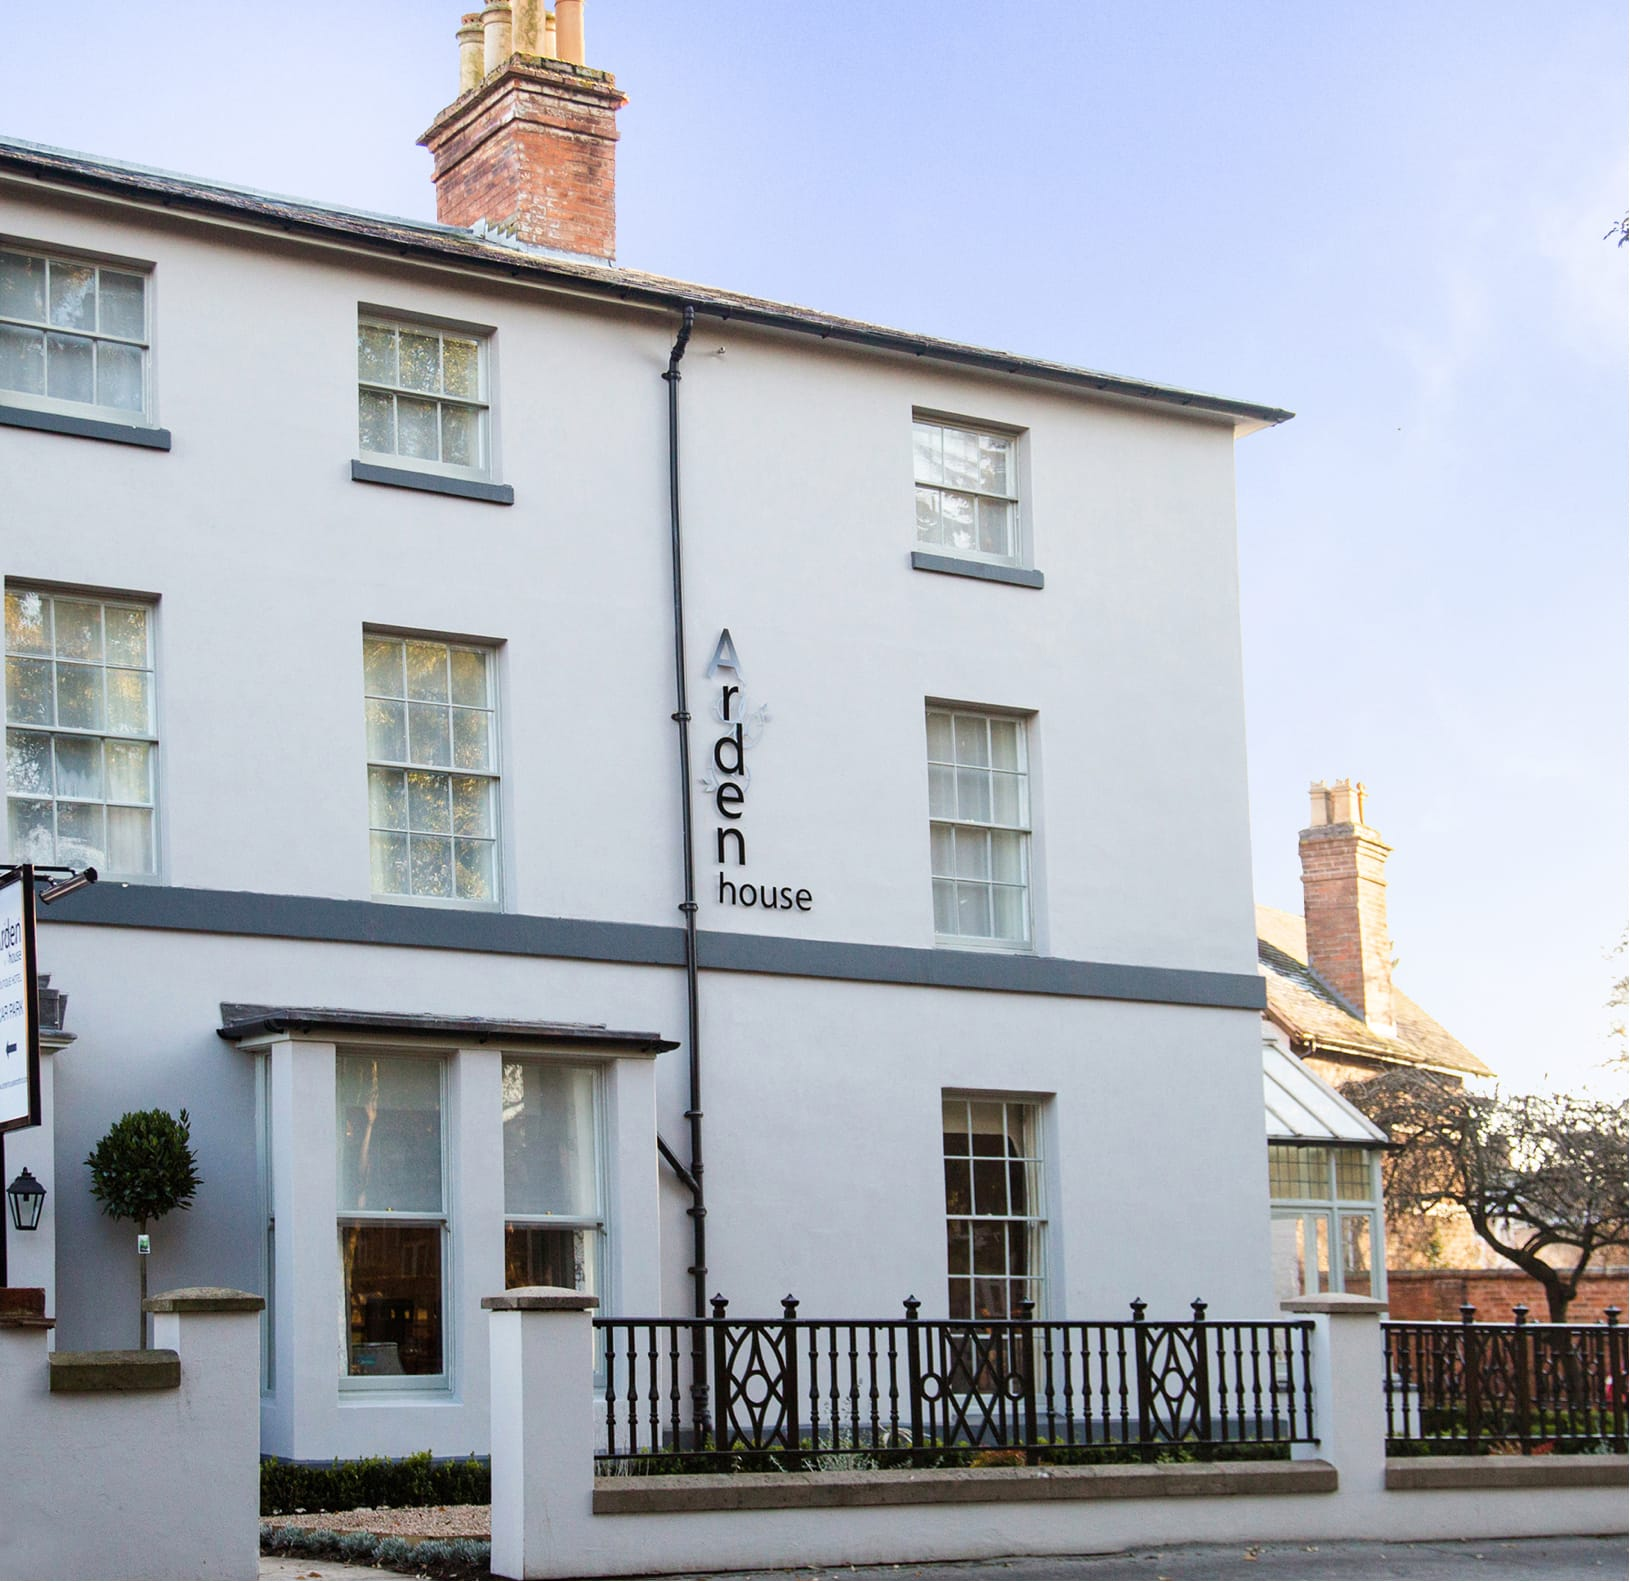 Choose to visit Arden House in Stratford-upon-Avon as part of the Eden Hotel Collection.